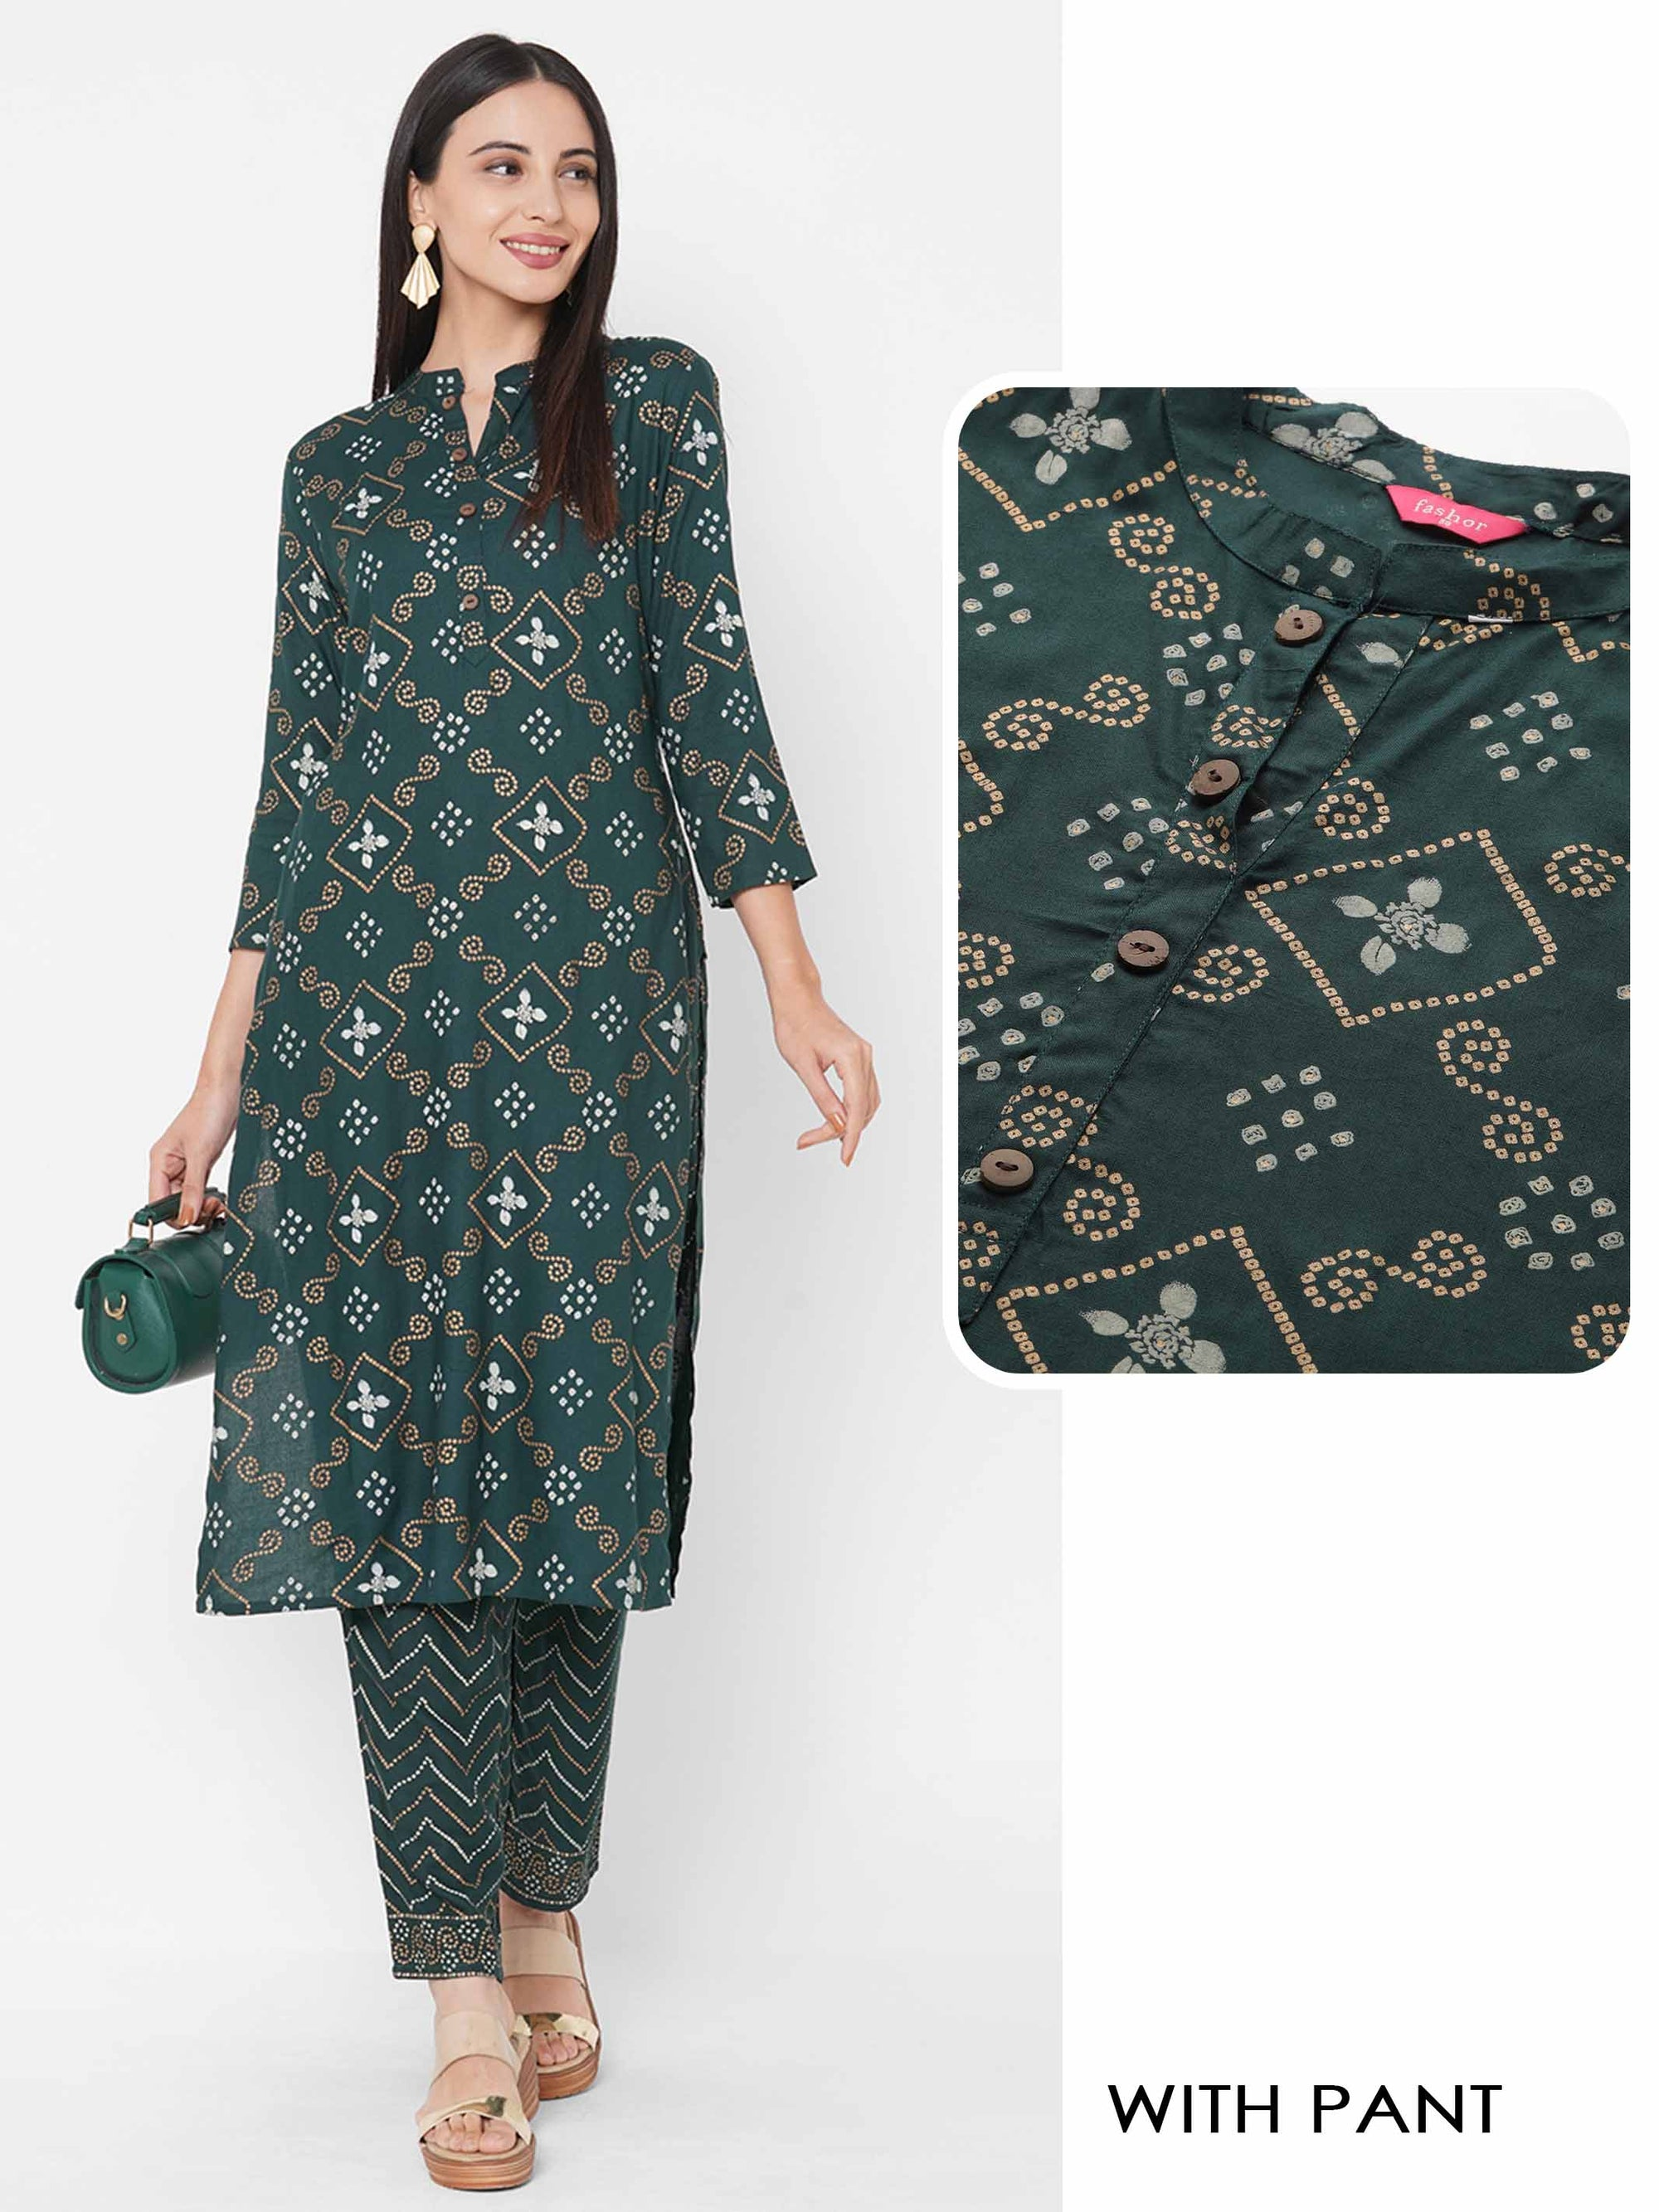 Bandhani Foil Mix Printed Kurta with Bandhani Chevron Printed Pant - Bottle Green